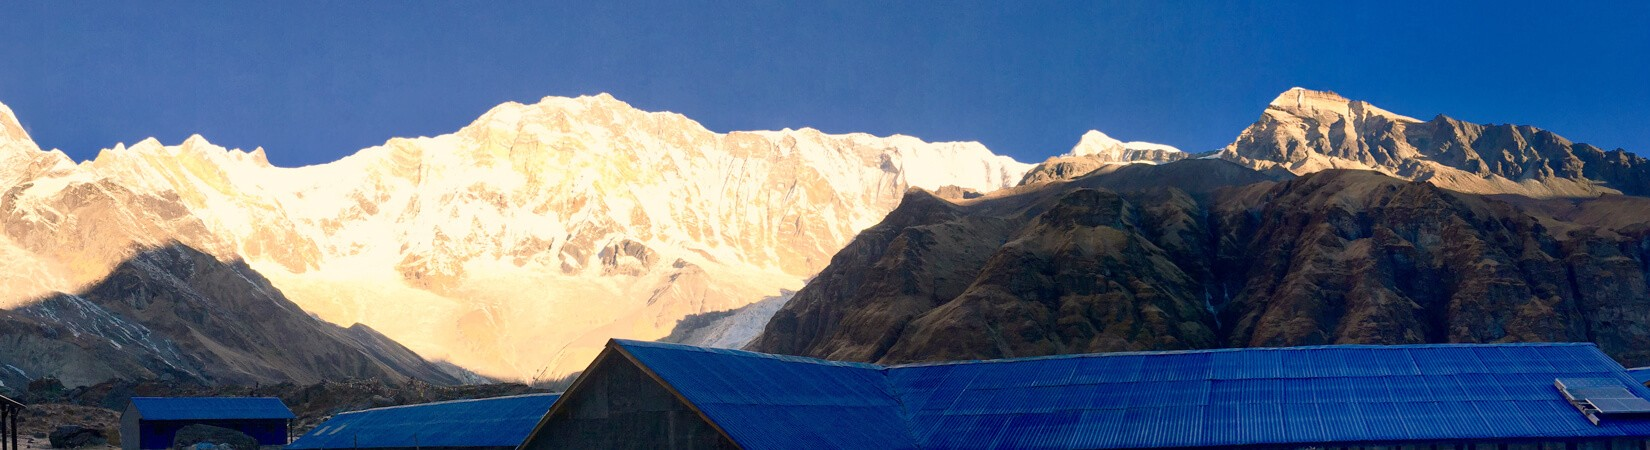 Summit for Annapurna Expedition